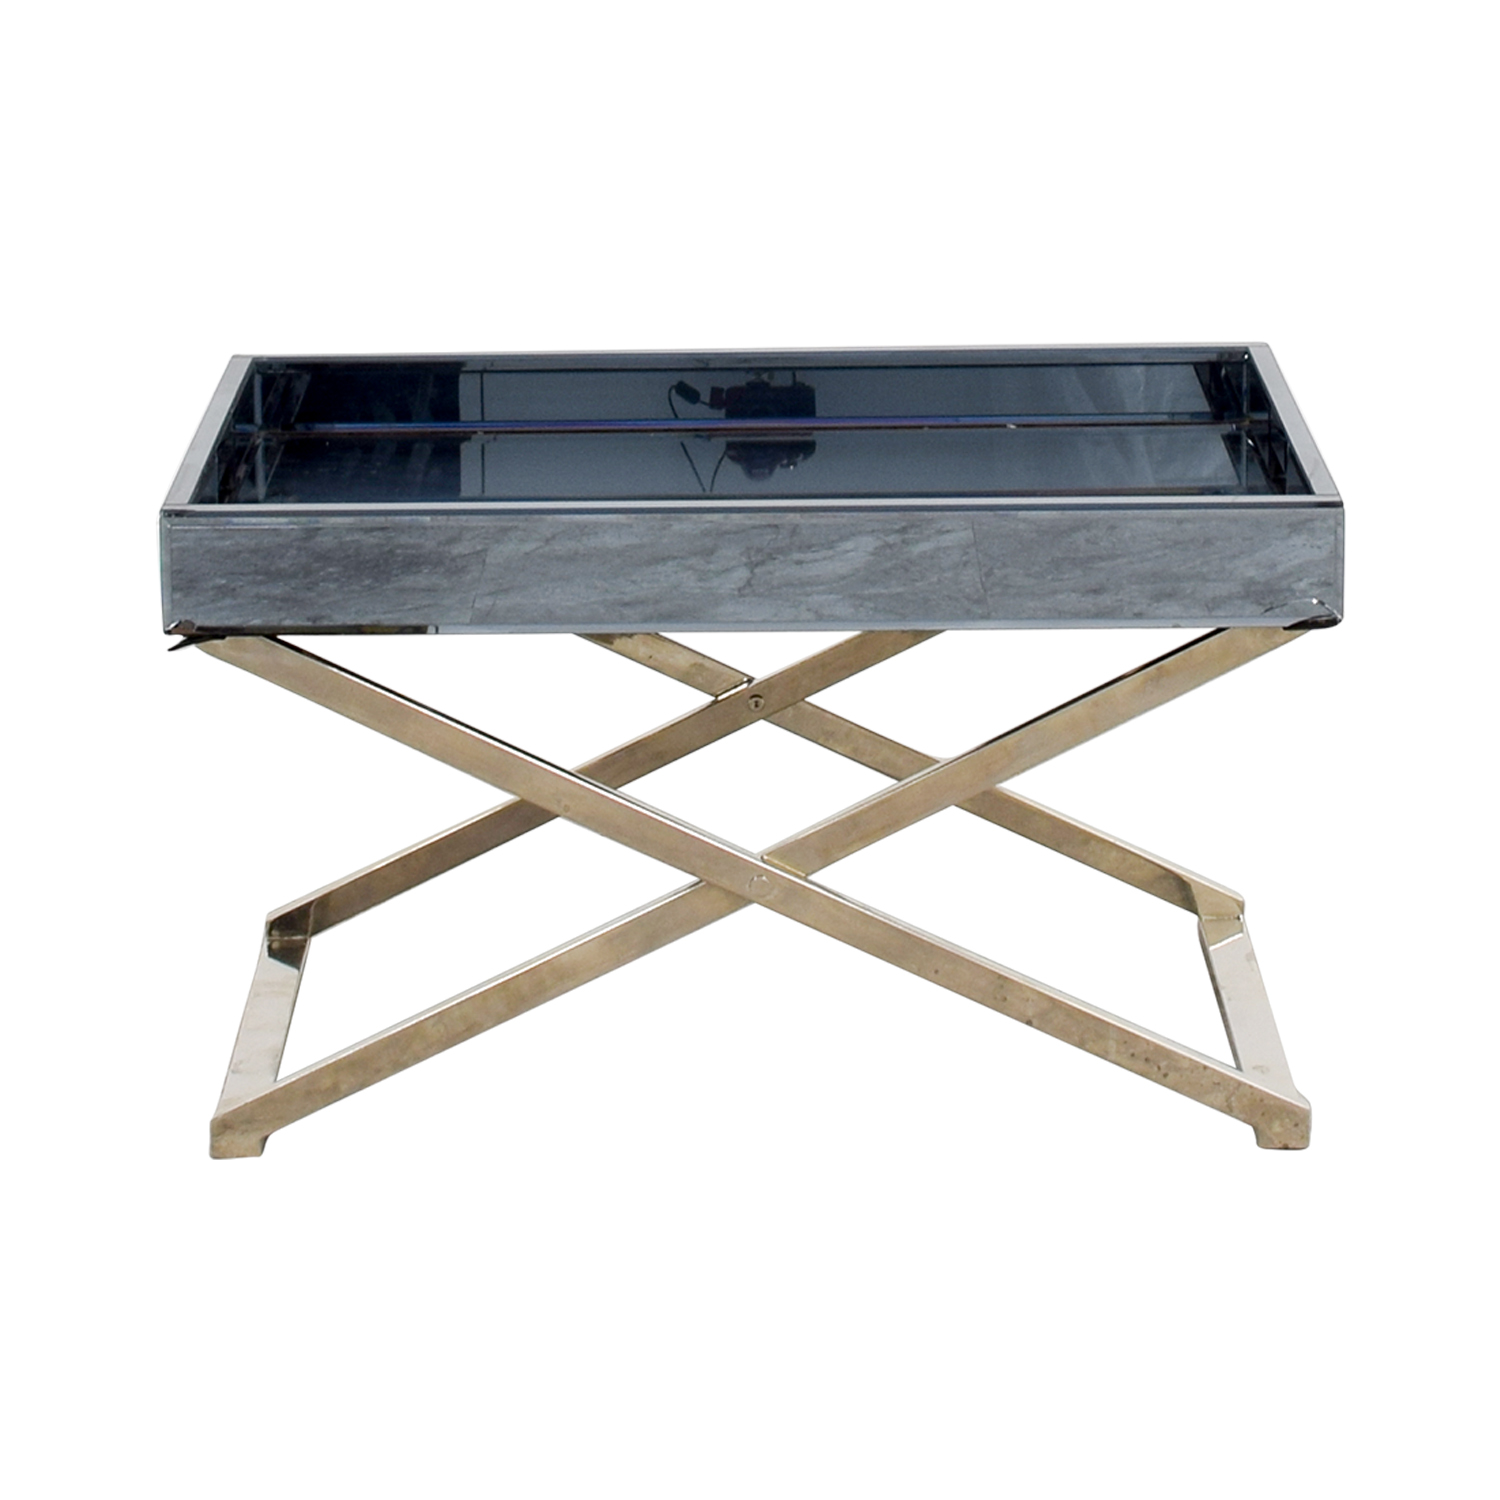 West Elm West Elm Butler Stand & Mirrored Tray coupon